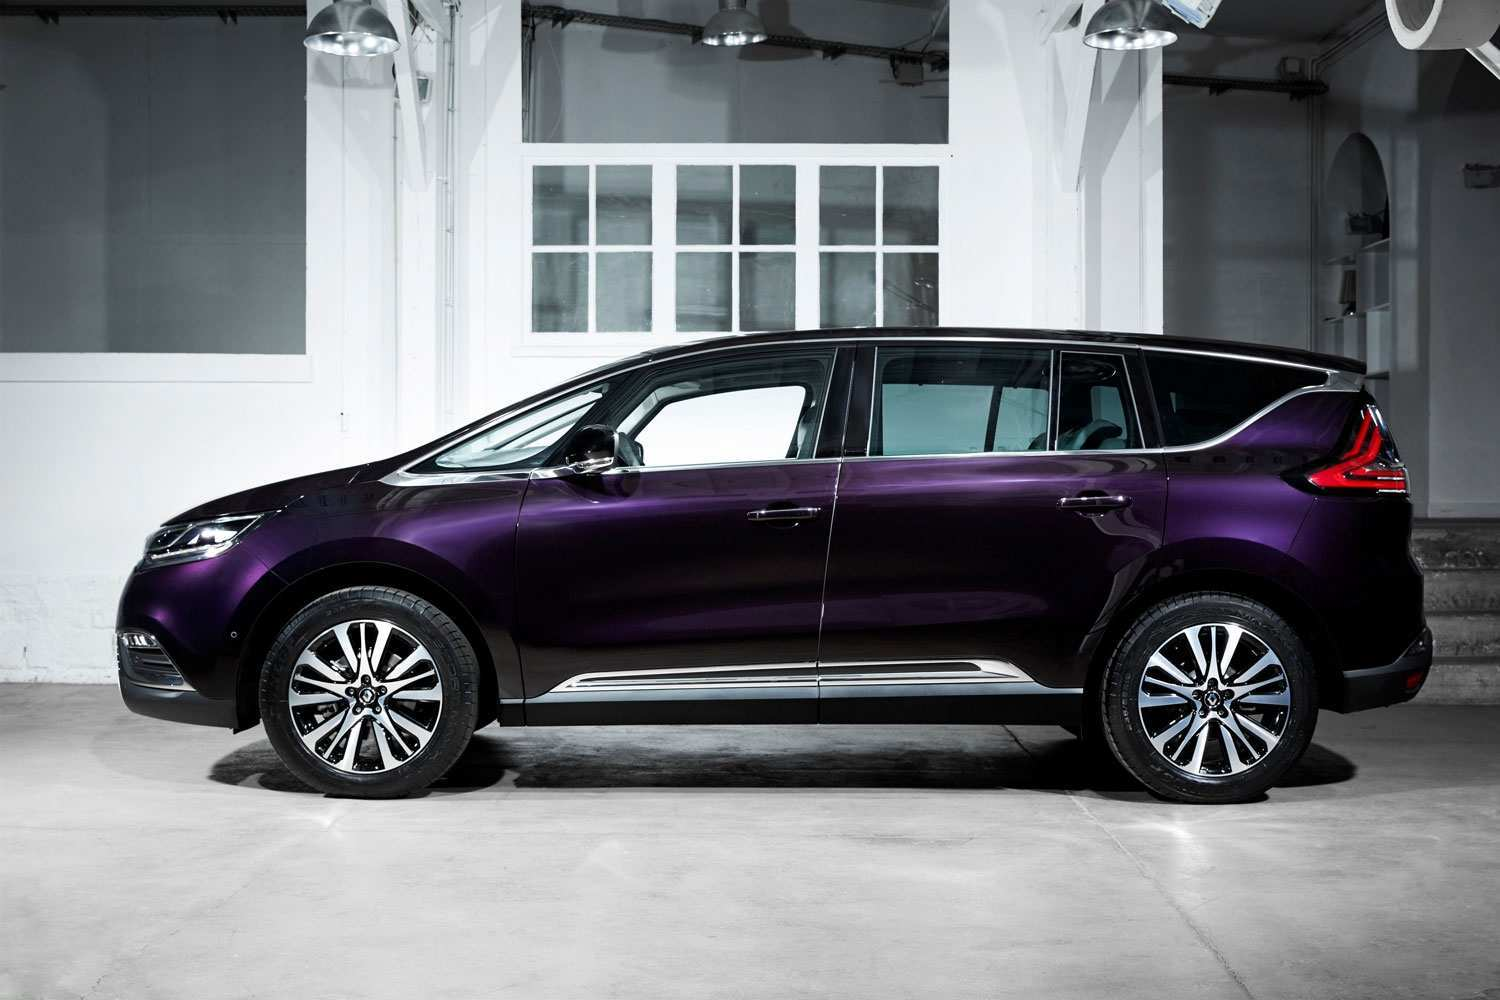 75 Concept of Renault Espace 2020 Rumors with Renault Espace 2020